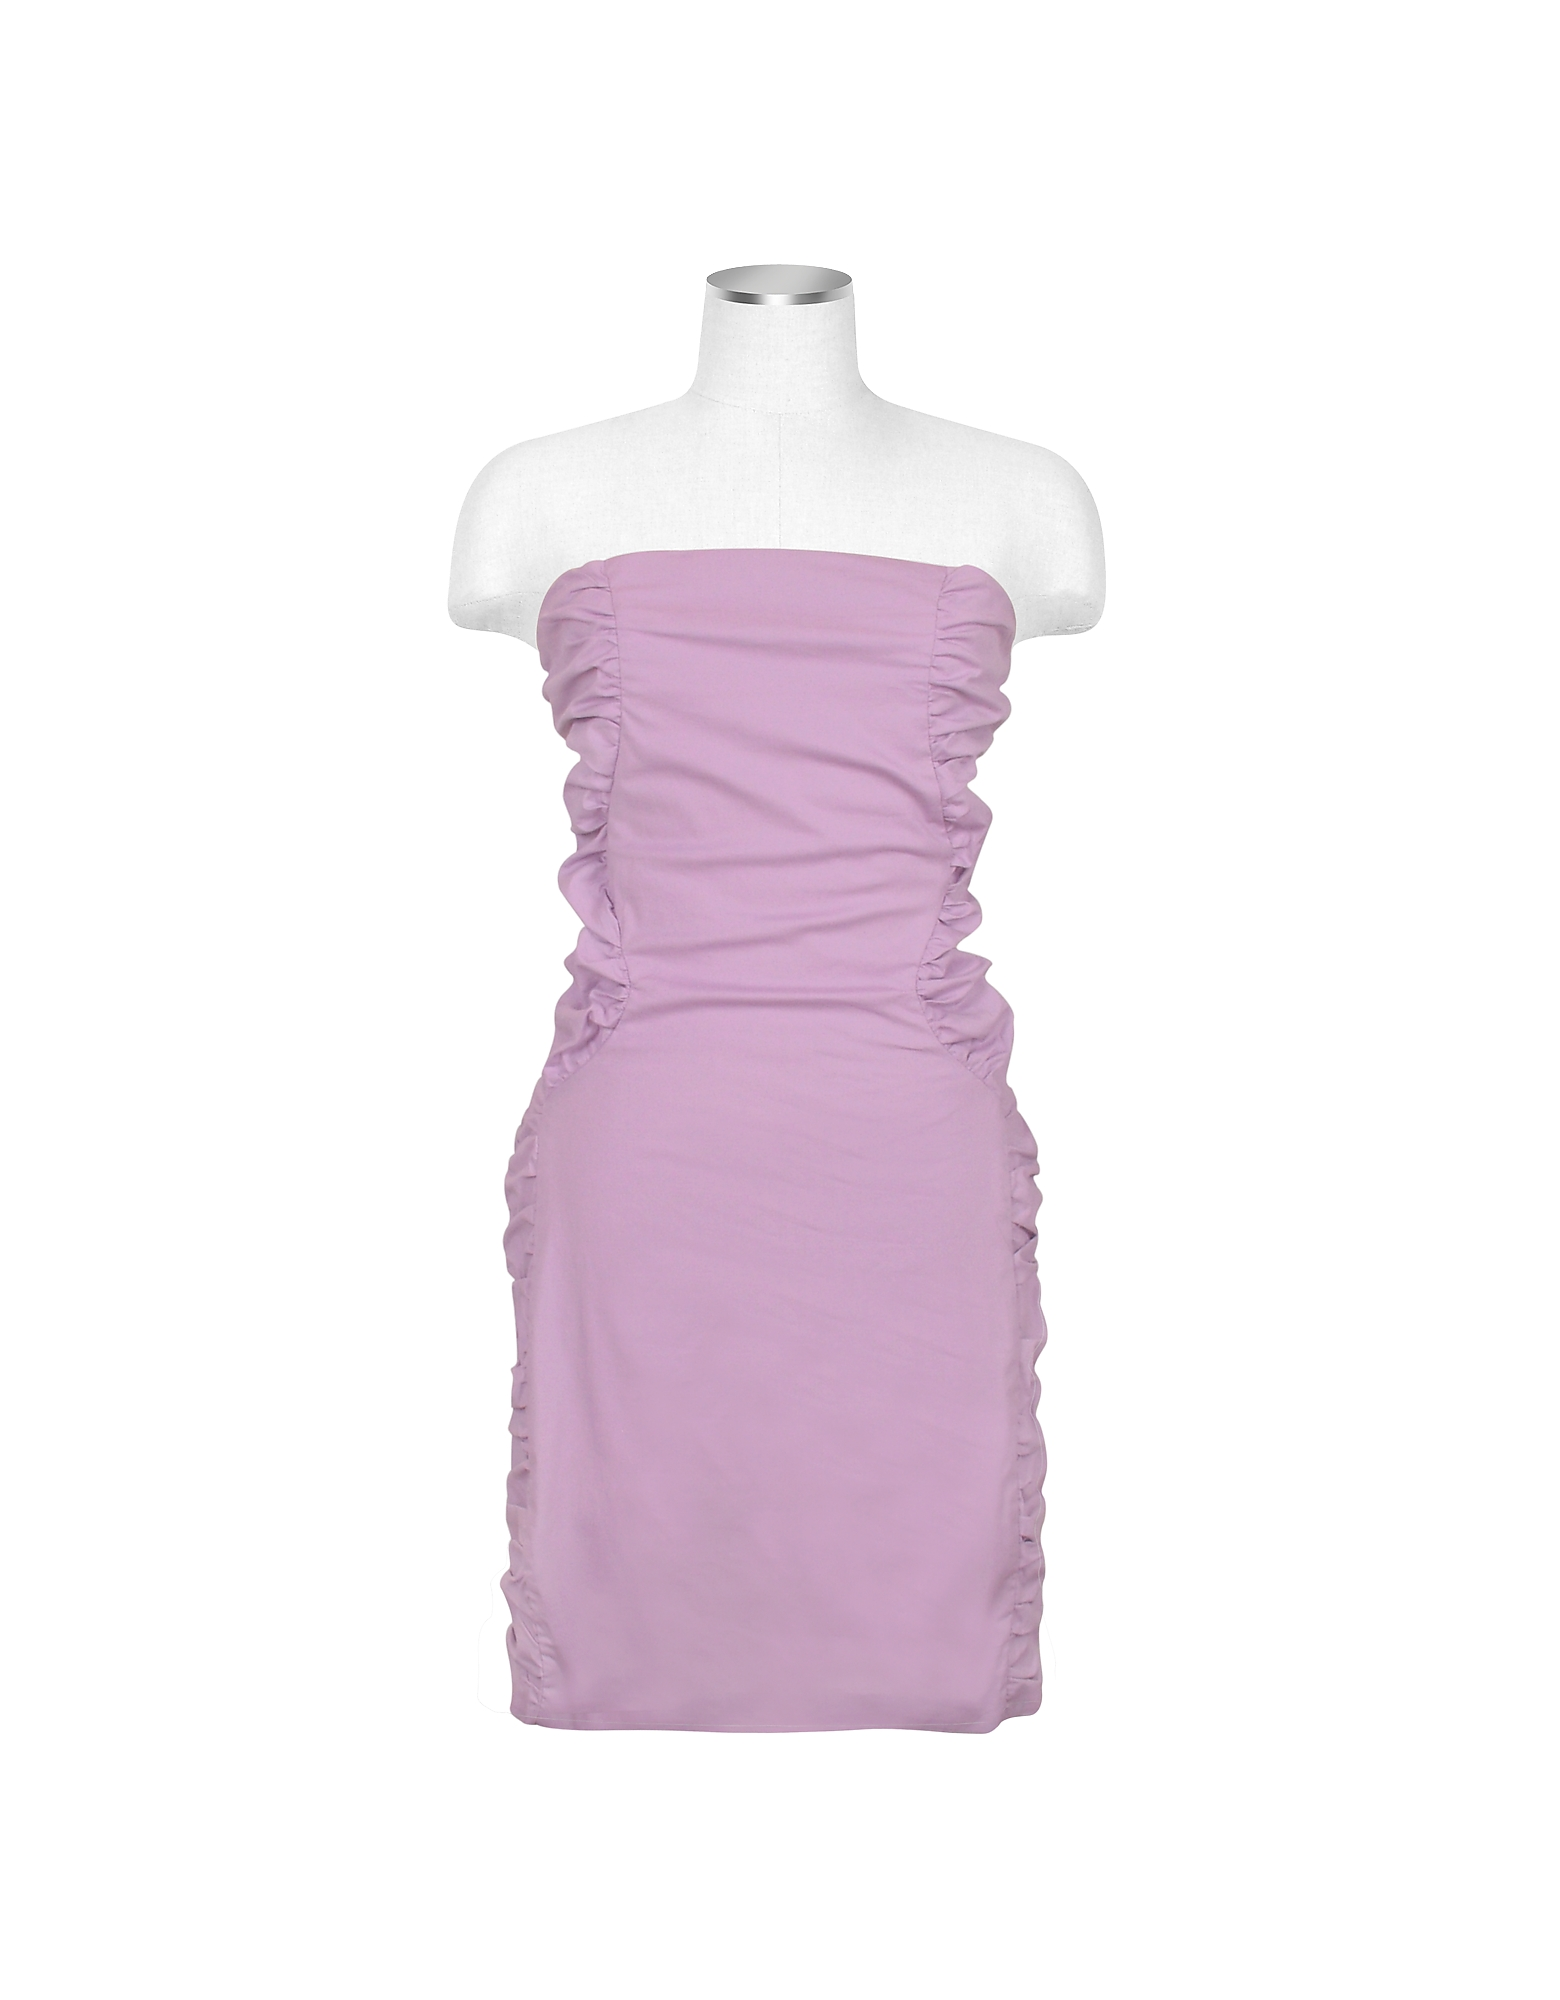 Image of Hafize Ozbudak Designer Tops & Co, Lavender Cut-out Back Strapless Mini Cotton Dress